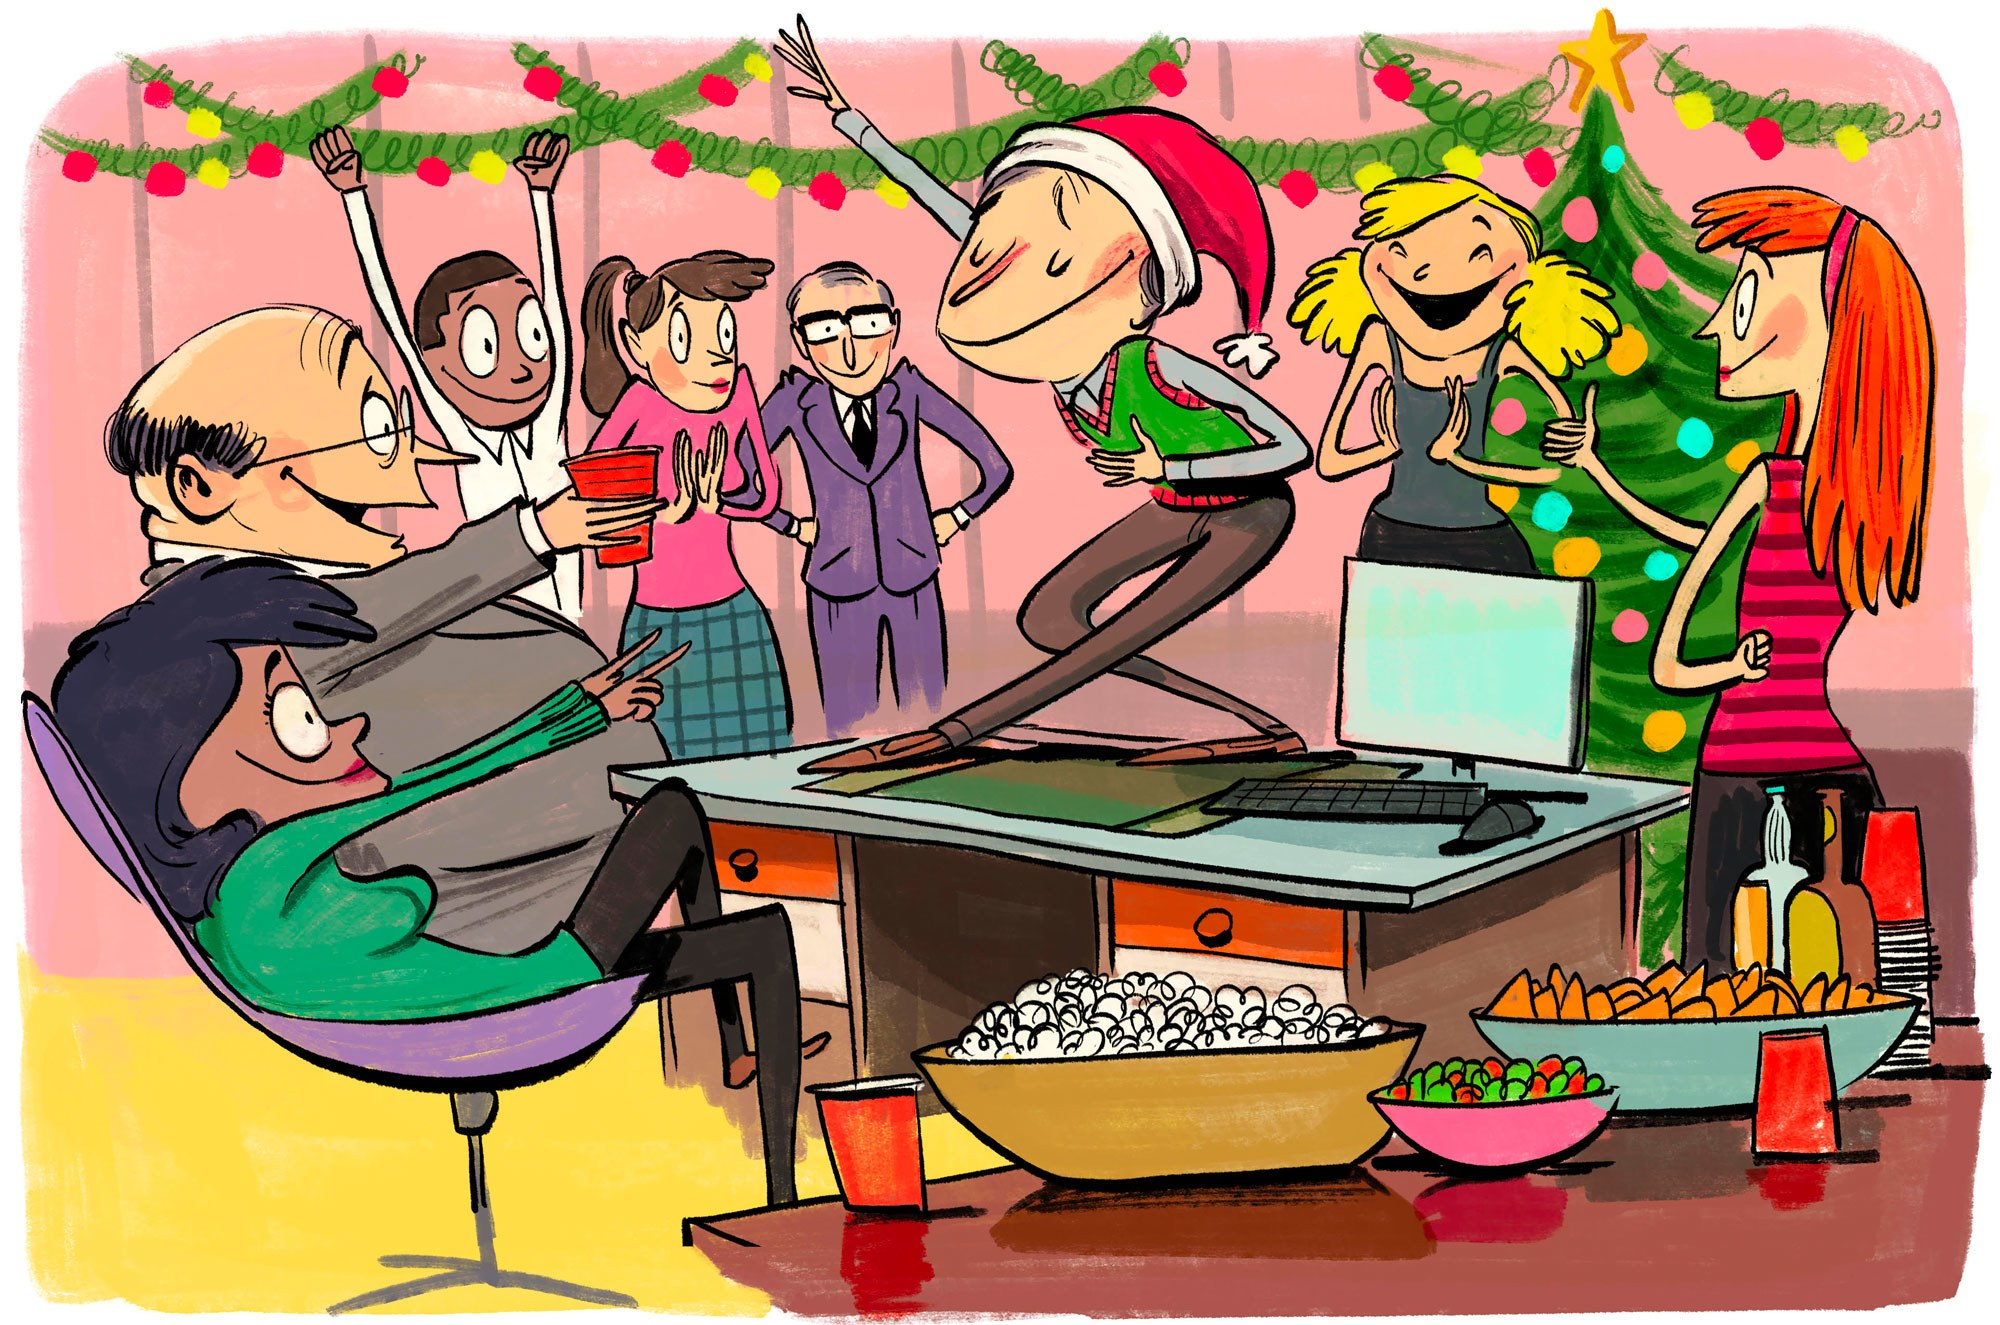 Company holiday party clipart graphic stock The 9 Cardinal Rules of the Office Holiday Party | GQ graphic stock